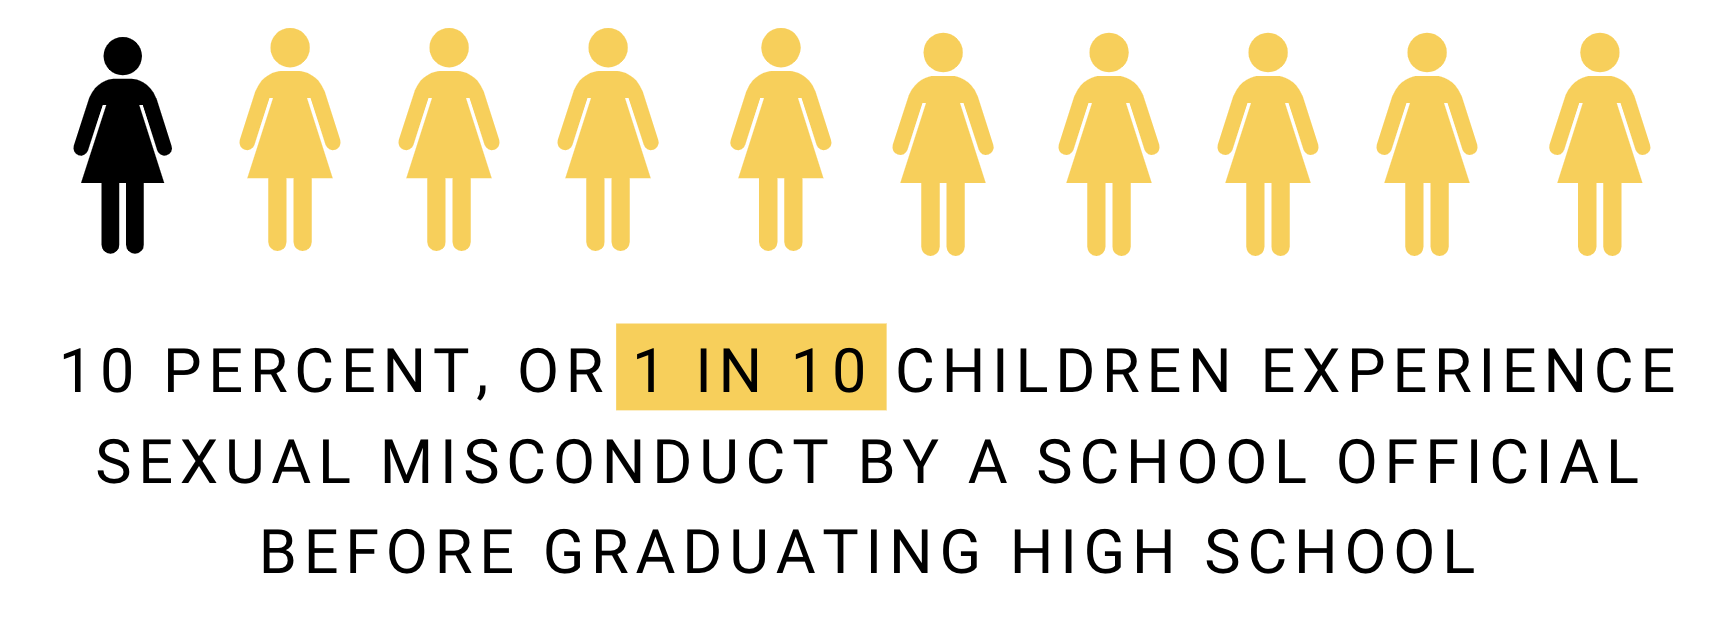 Infographic stating that 1 in 10 children experience sexual misconduct by a school official before graduating high school